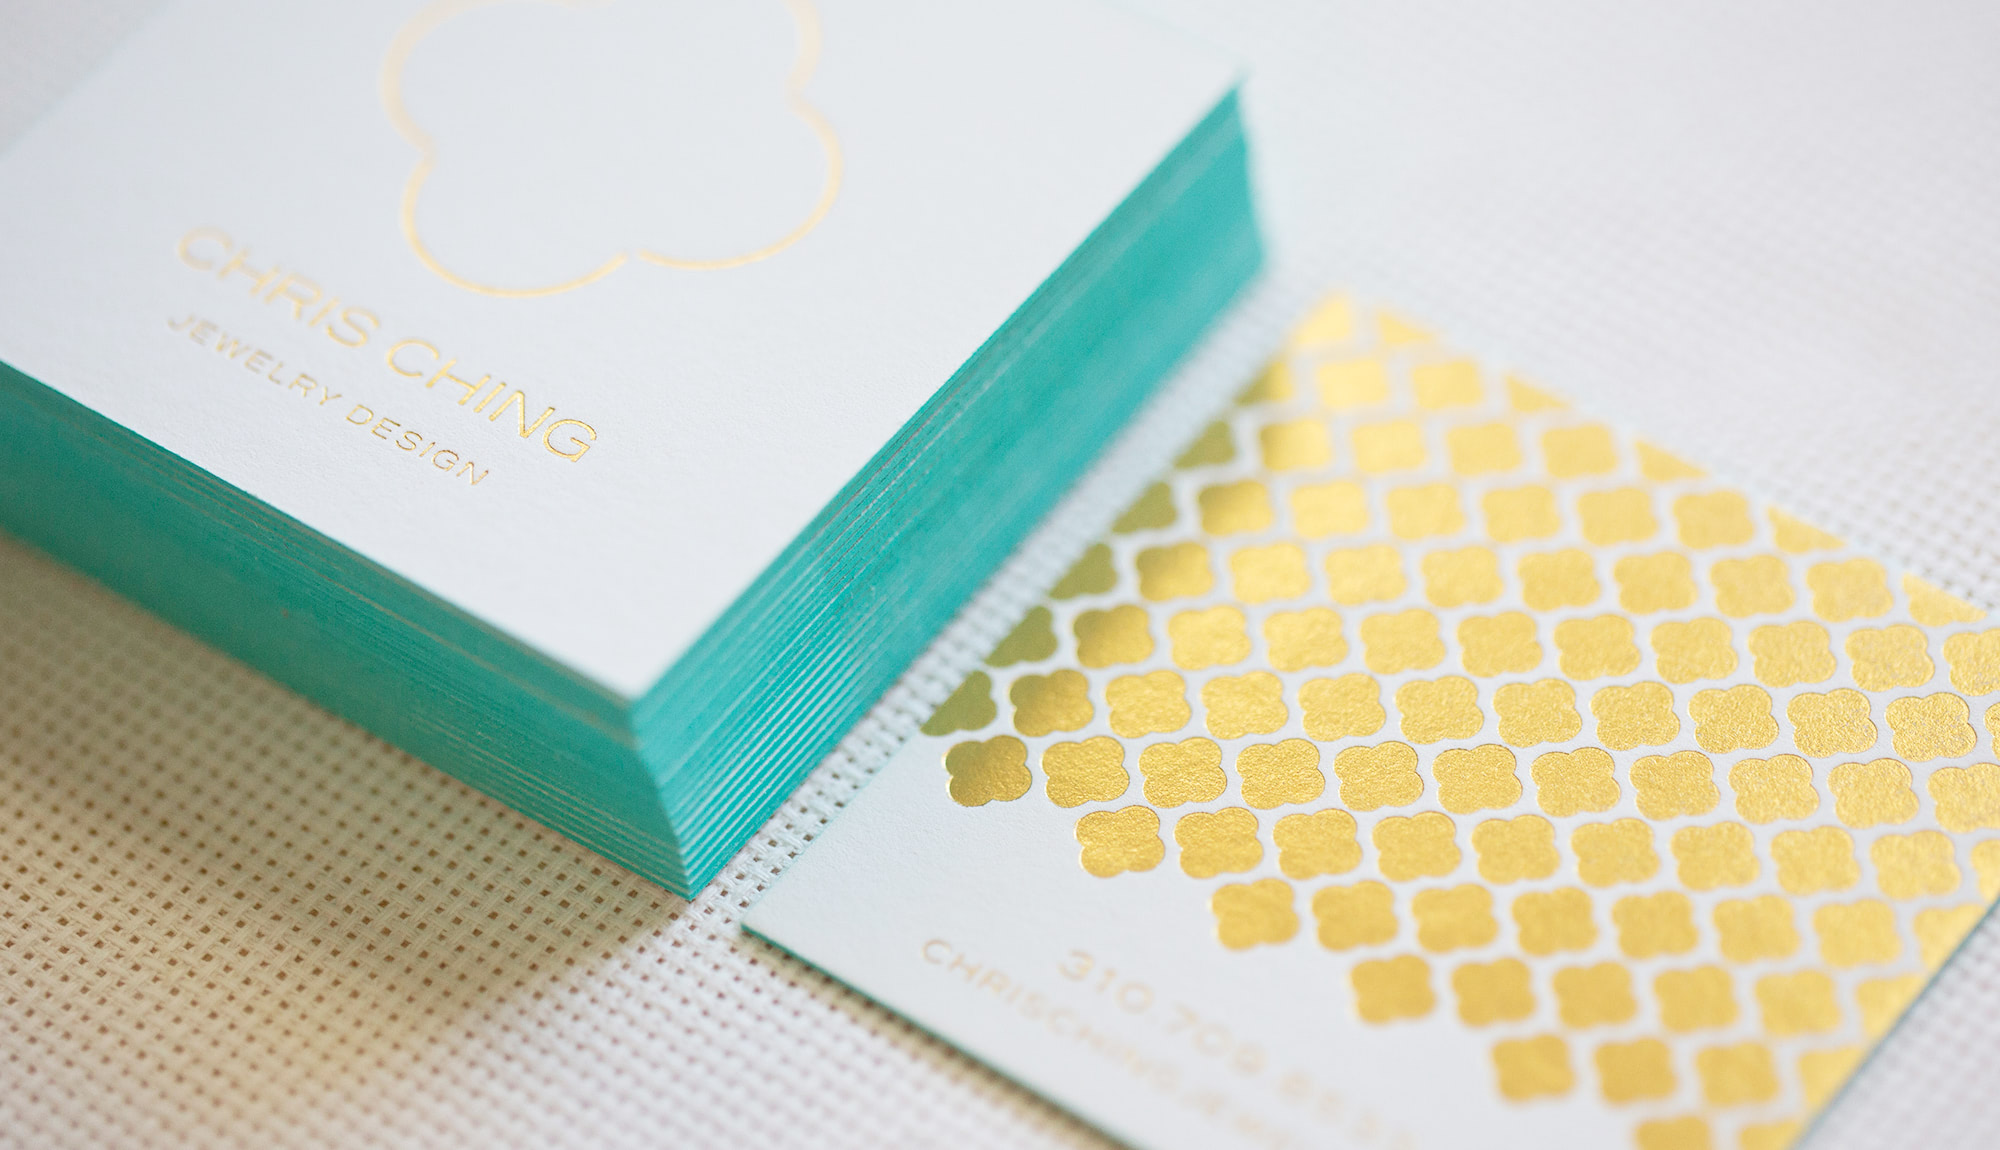 Gold Foil-Stamped Business Card with Aqua Edges | Akula Kreative | Houston, TX